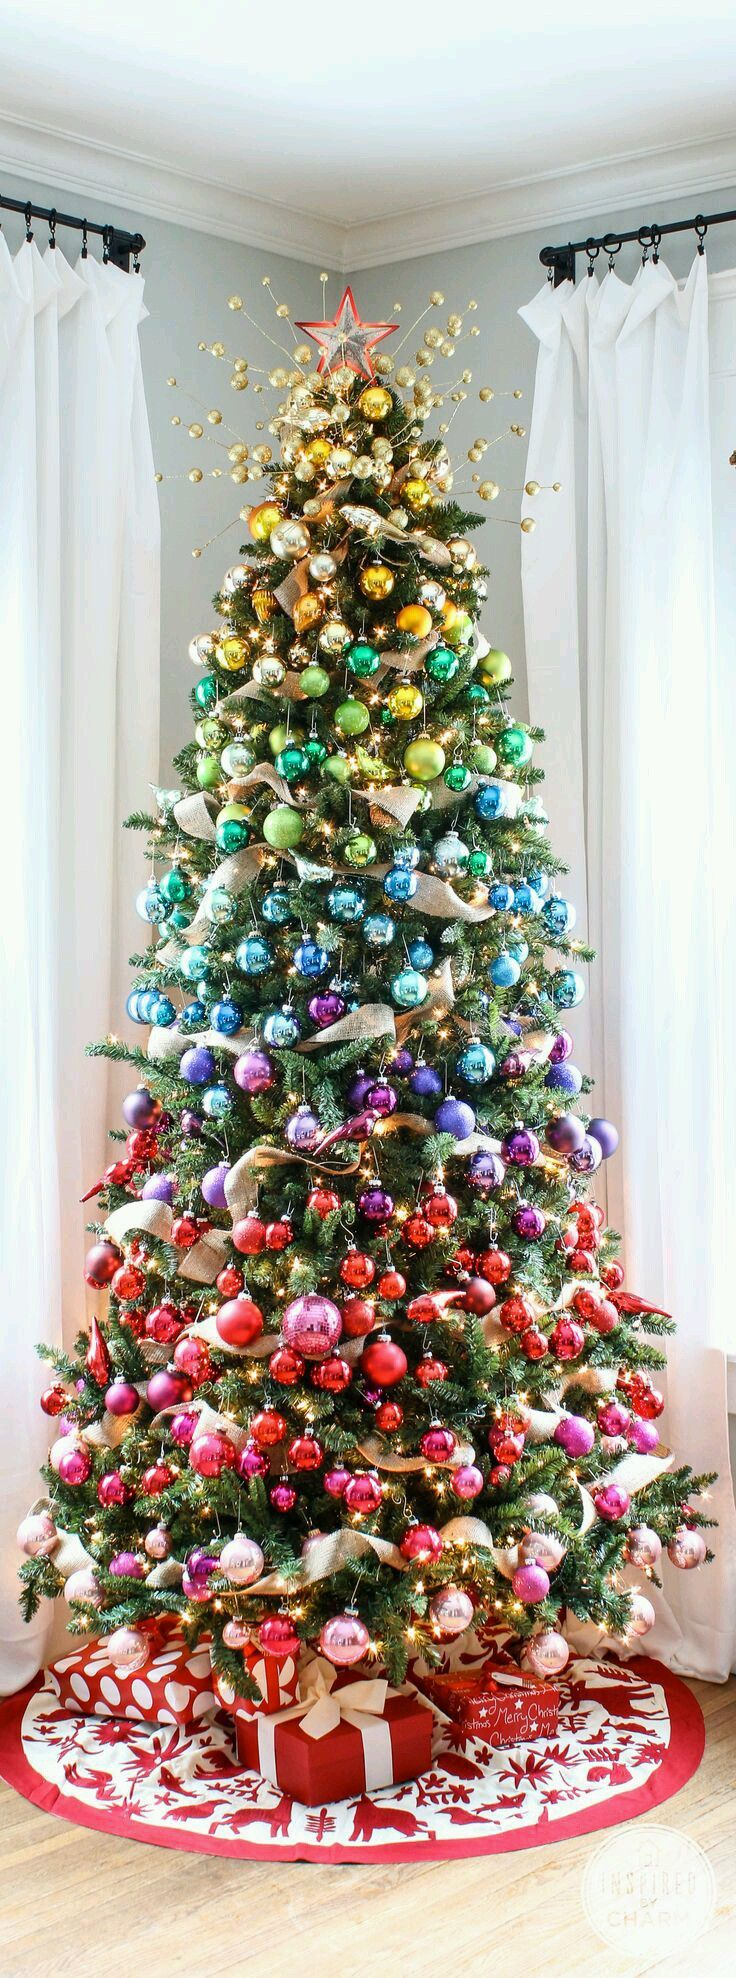 Why do we have christmas decorations on a tree - 43 Clever Over The Top Ridiculous Christmas Decor Ideas You Would Only Find On Pinterest